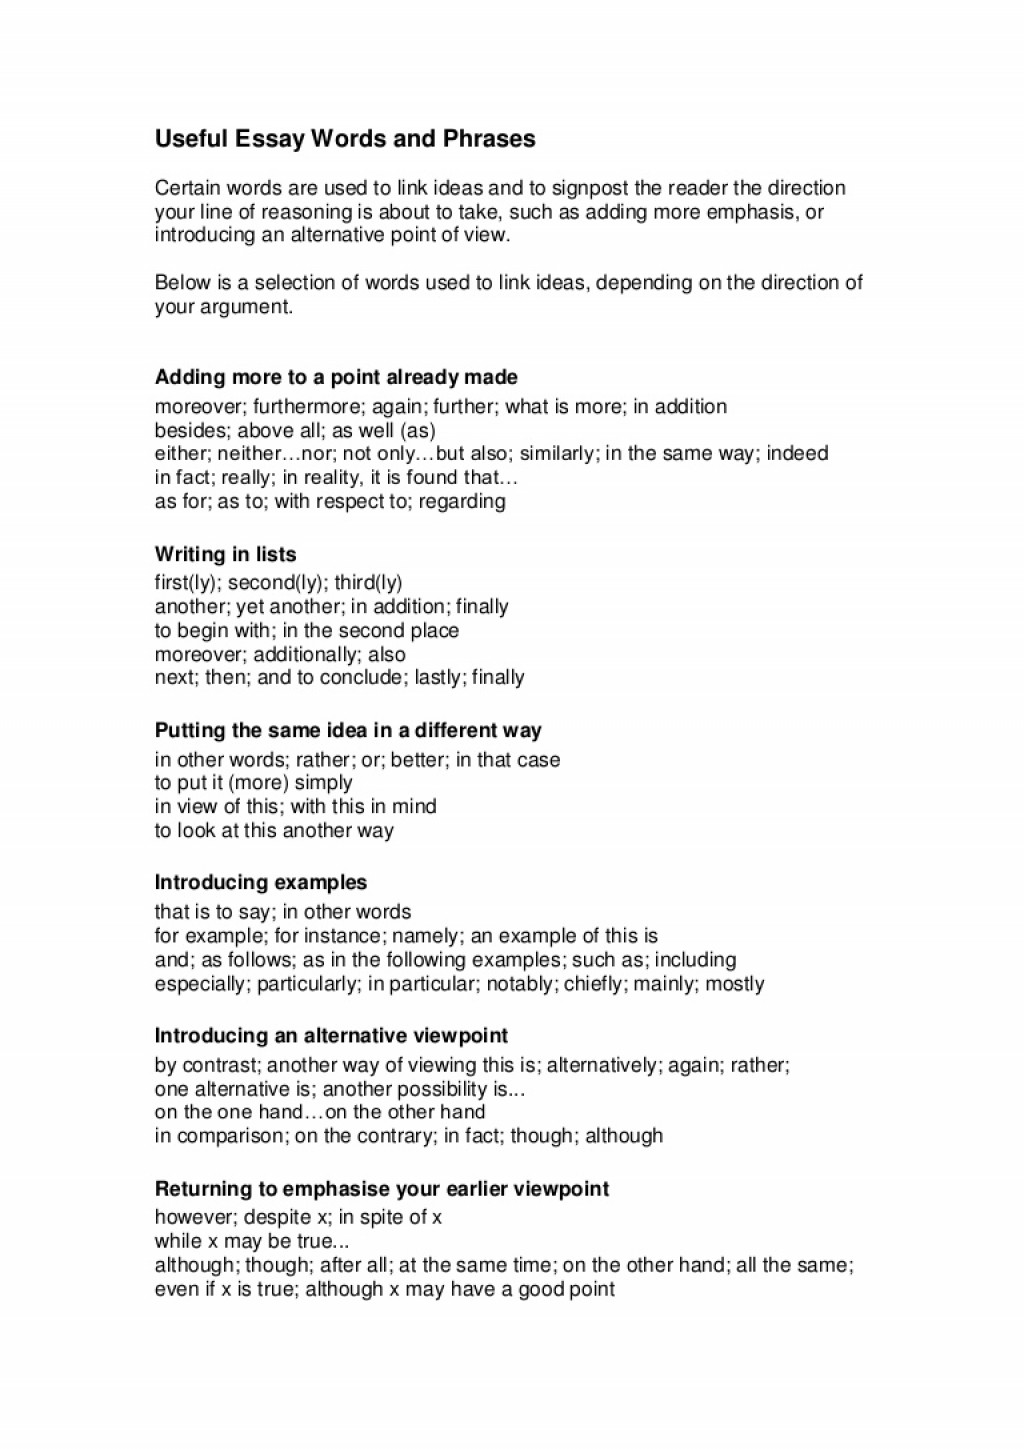 018 Writtenassignments2usefulessaywordsandphrases Phpapp02 Thumbnail Opening Sentences For Essays Essay Unique Examples Of Good College Paragraphs Starting Large